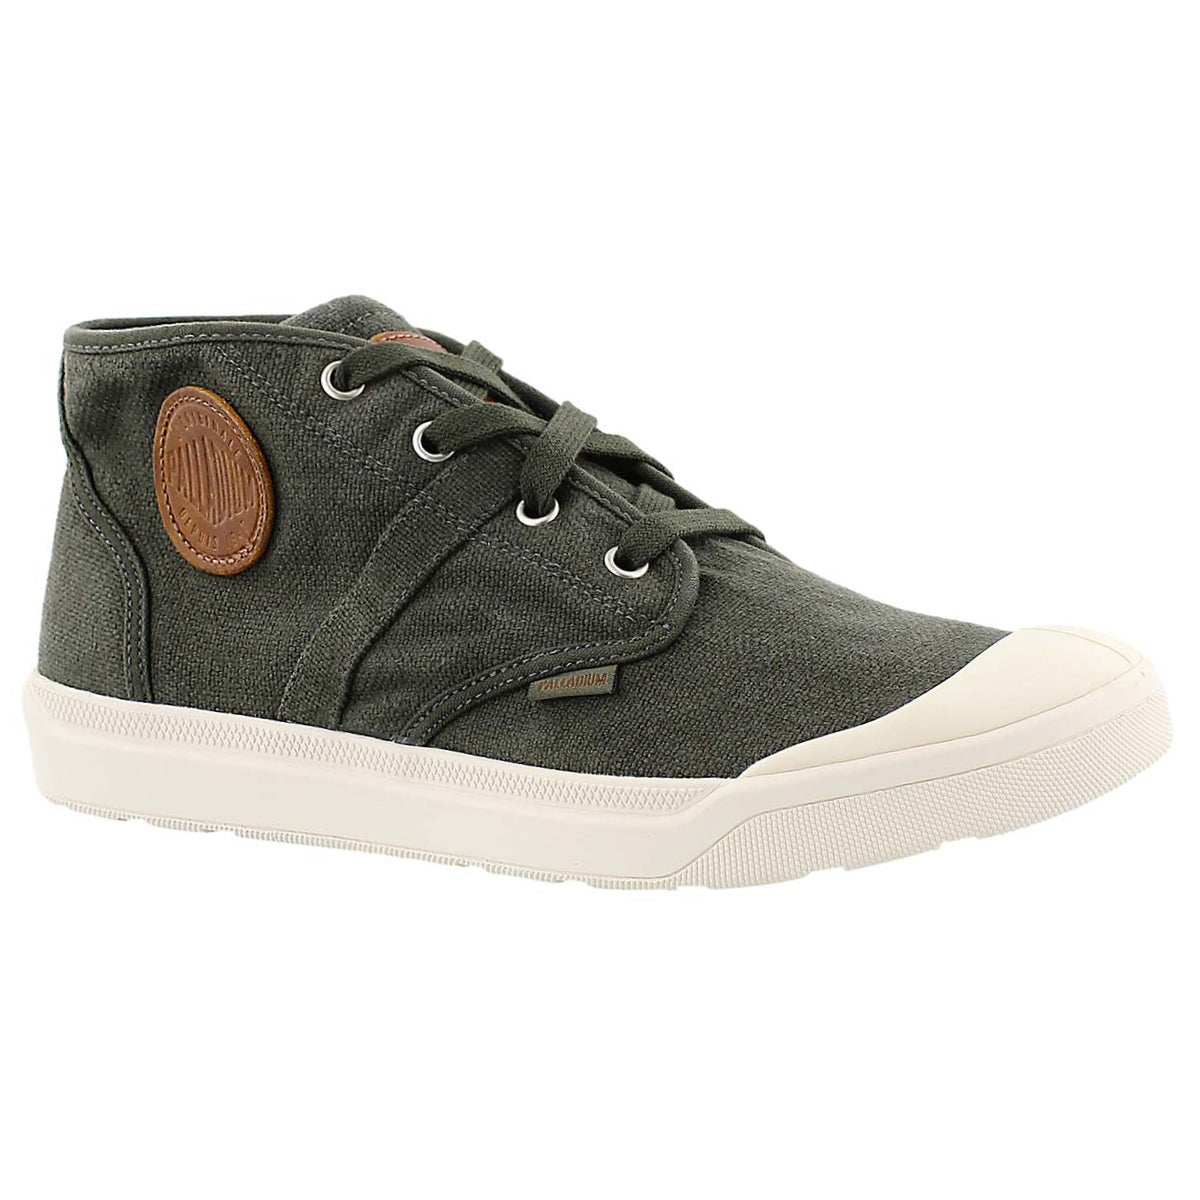 Men's PALLARUE MID army green sneakers